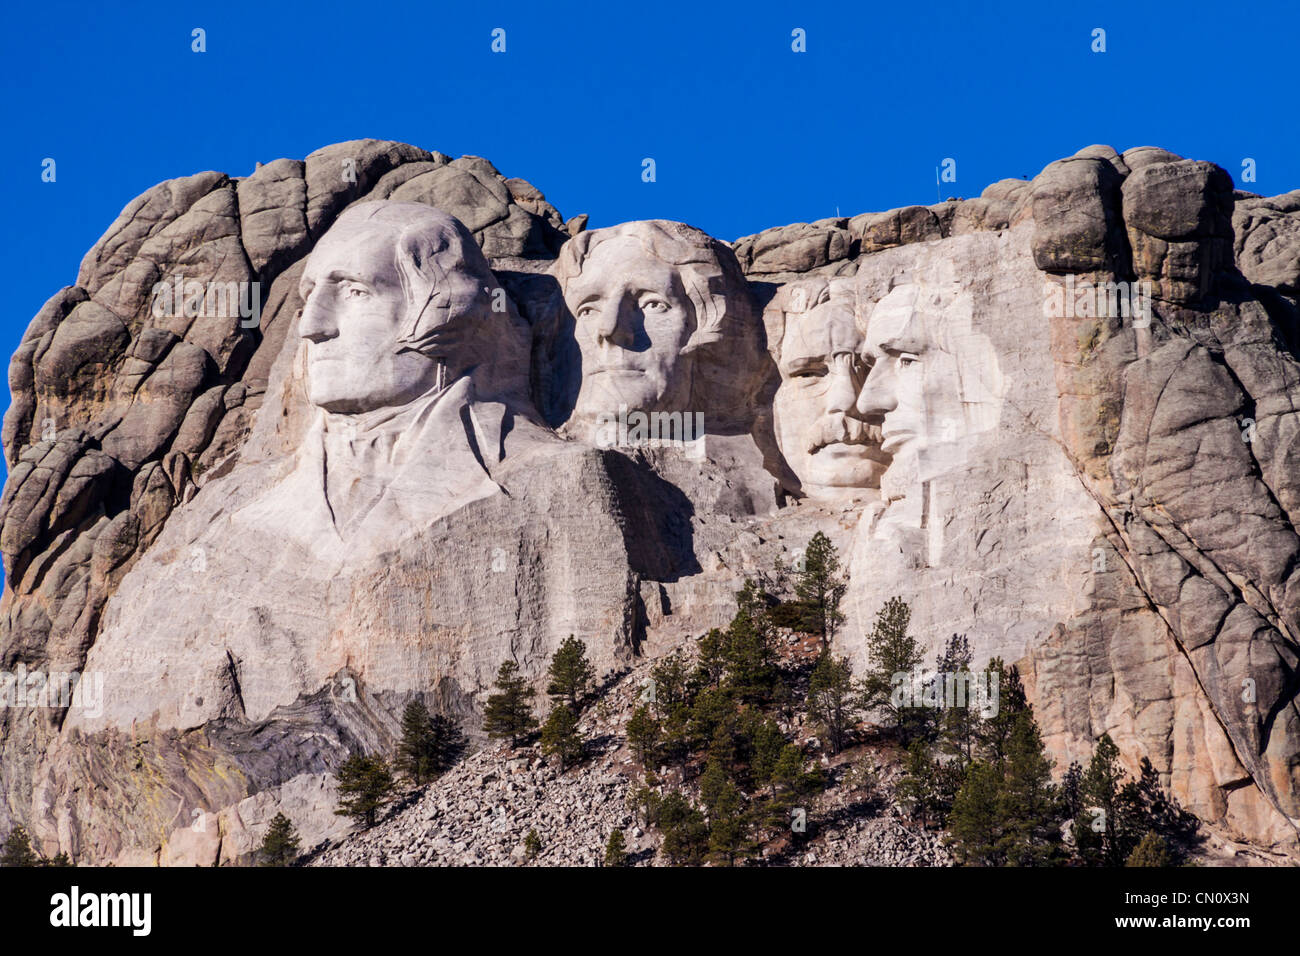 Worksheet Why Is Mount Rushmore Important president sculptures mount rushmore national memorial in south dakota a famous patriotic symbol since it